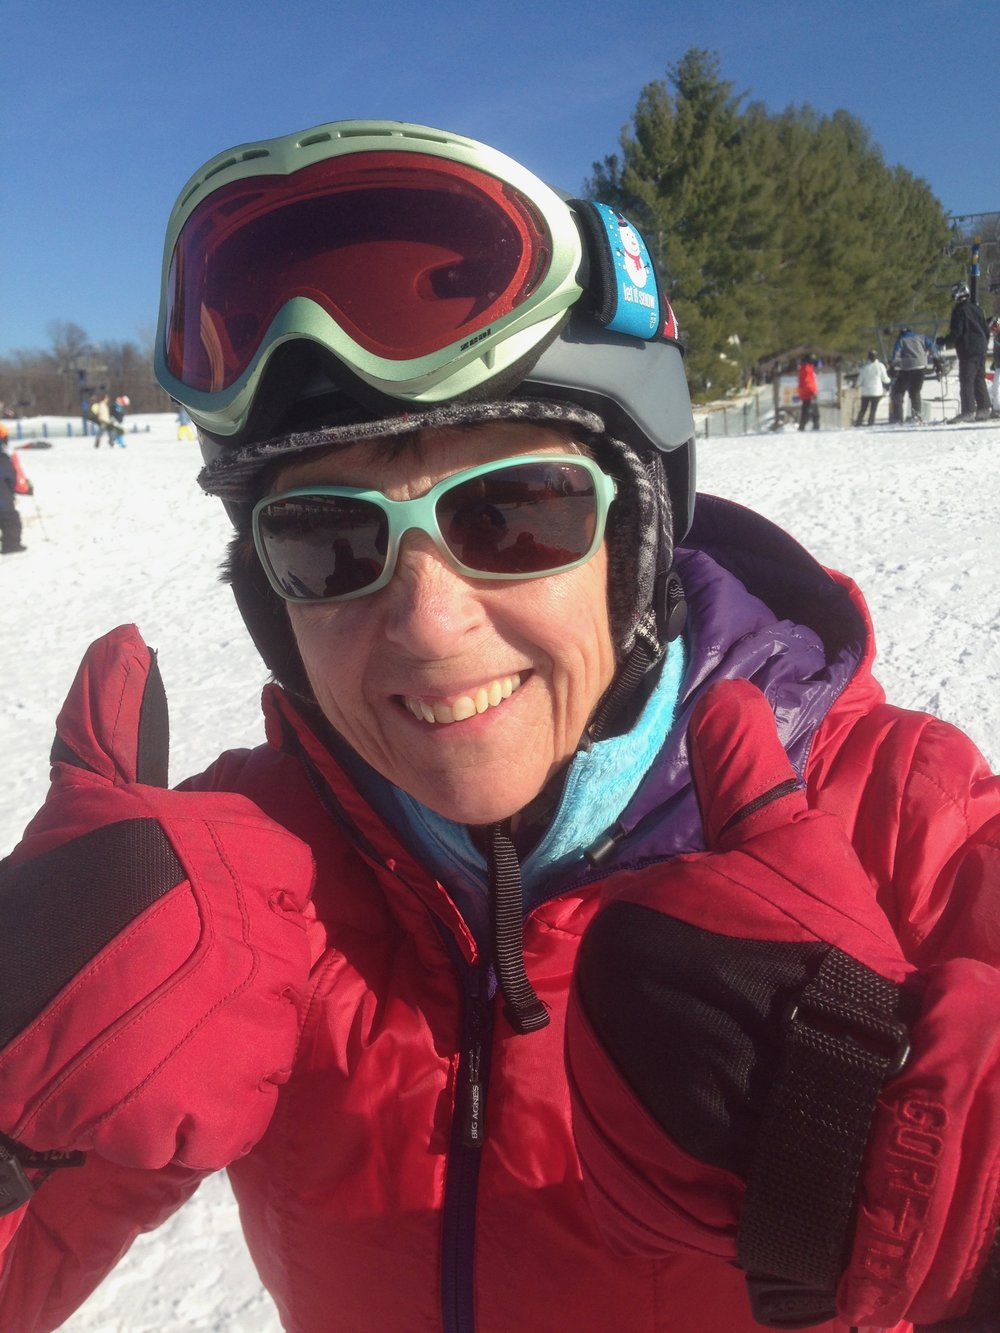 Mary Jo tarallo , Executive director, learn to ski and snowboard/bring a friend initiative